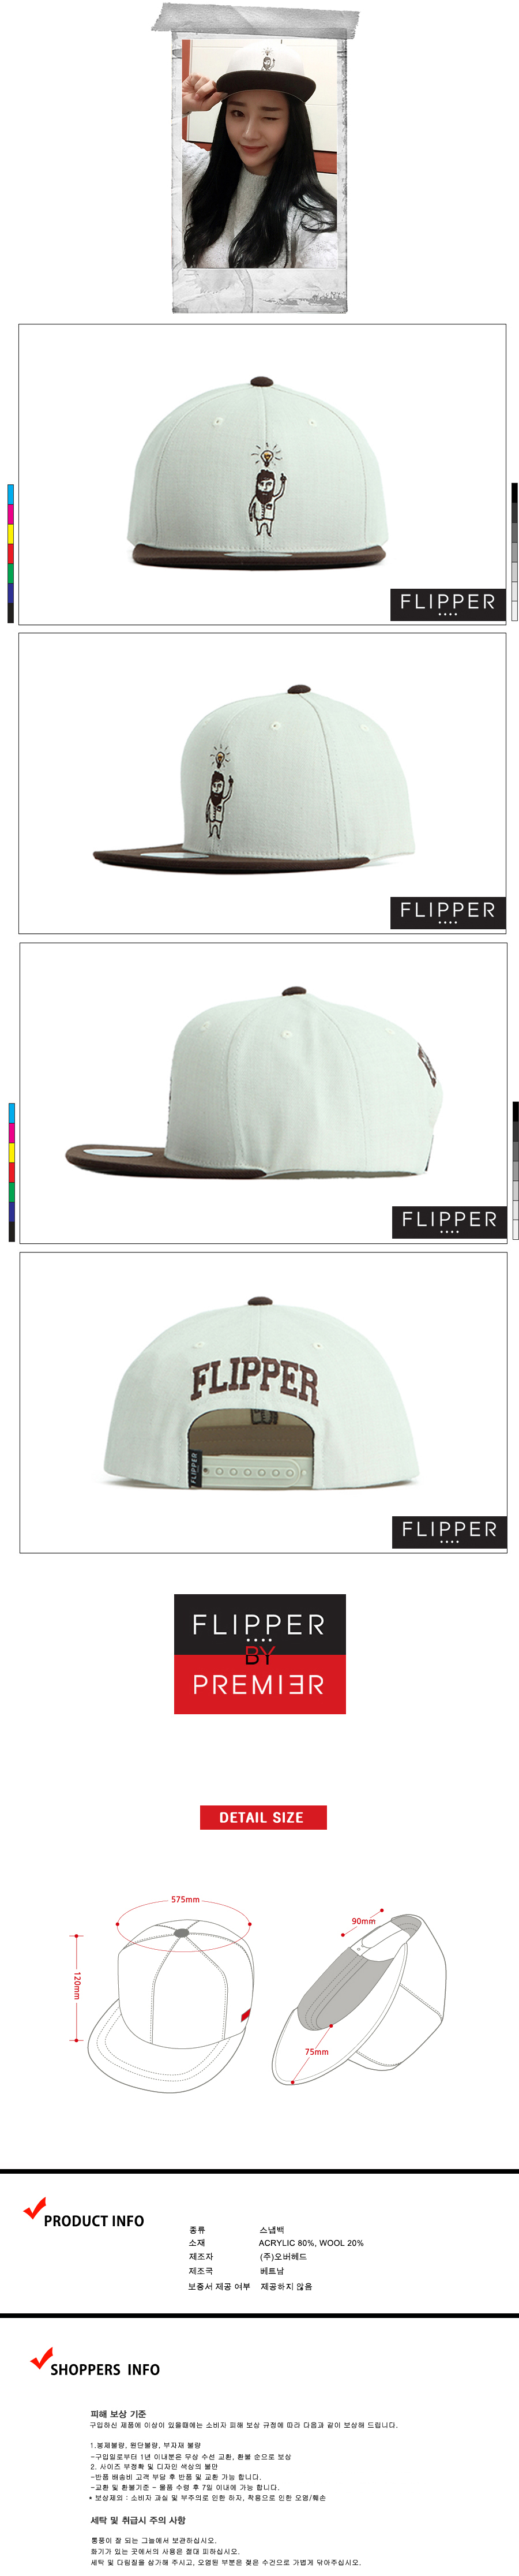 [ PREMIER ] [Premier] Flipper Snapback Good Idea Beige/Brown (FL006)